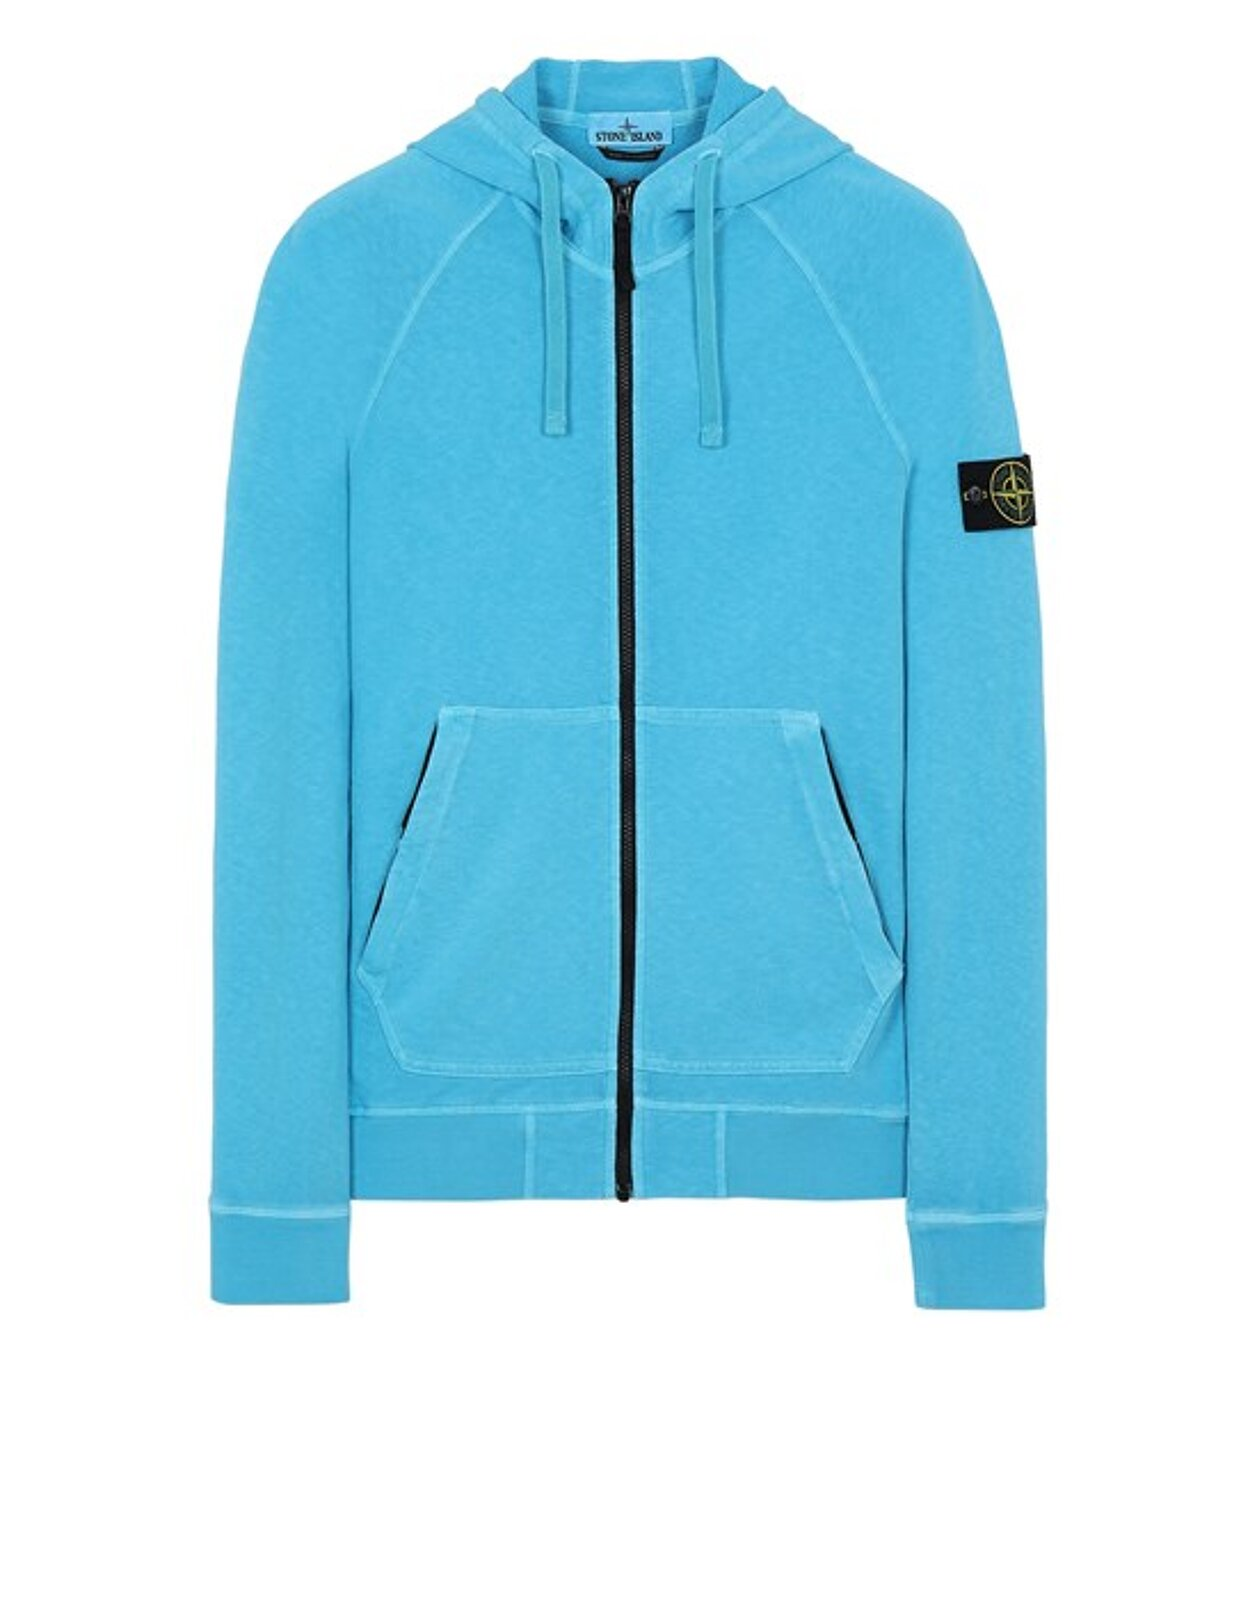 61560 T.Co Old - Stone Island